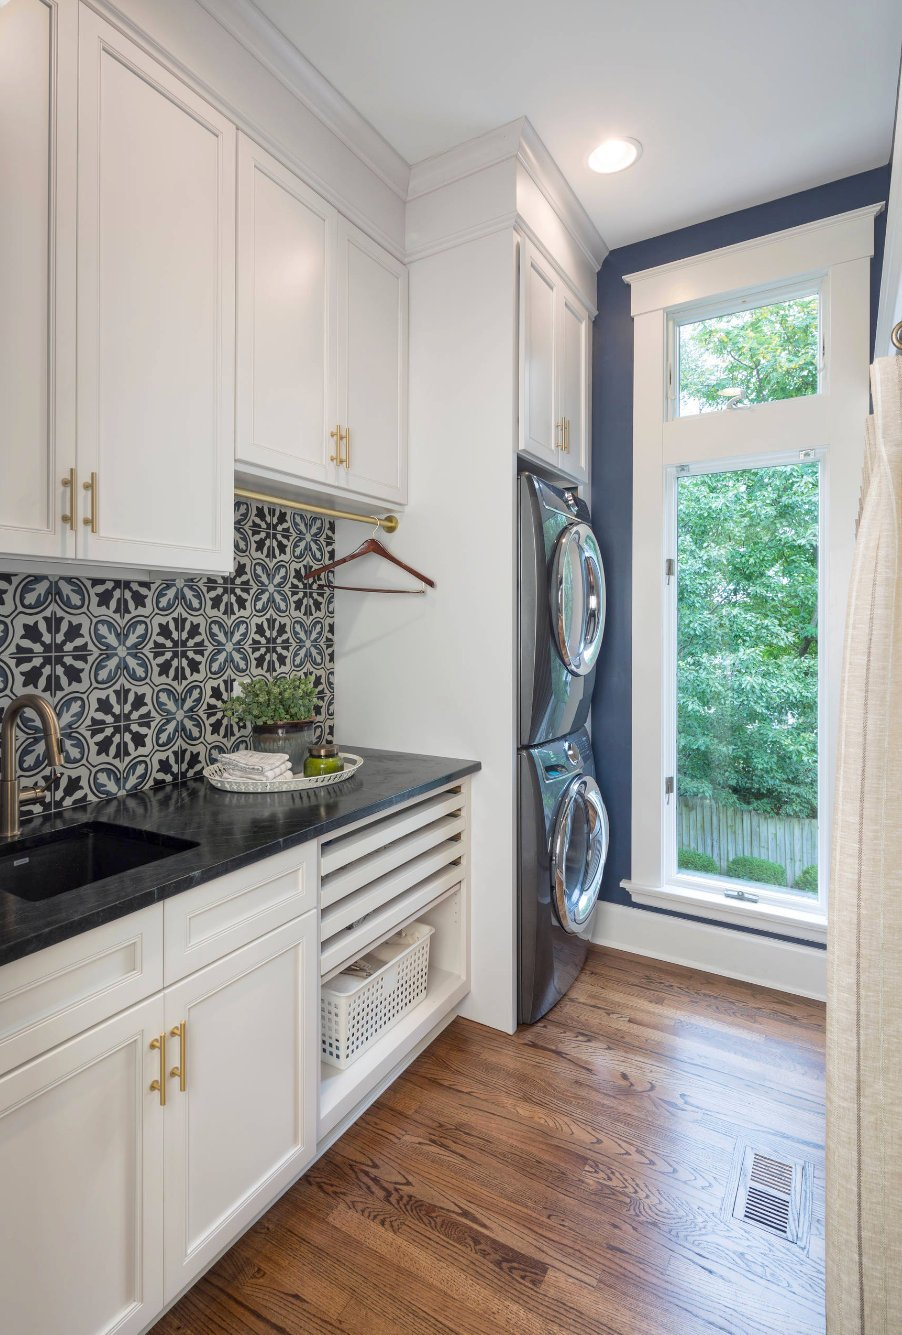 navy patterned wall tiles in laundry room